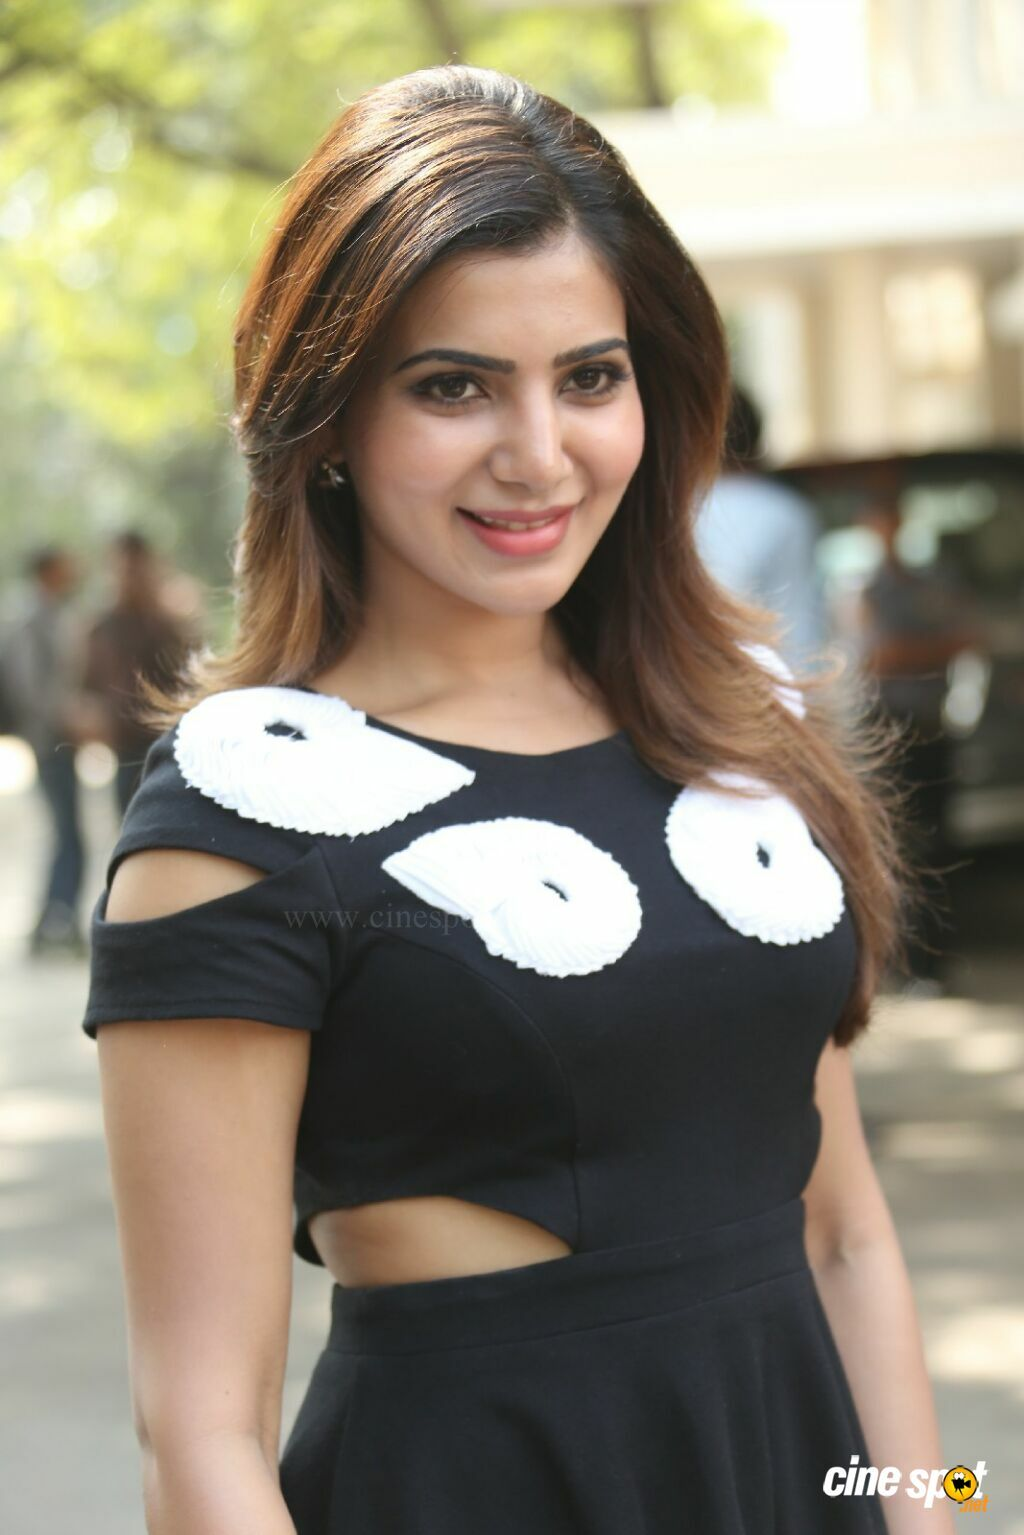 samantha ruth prabhu ragalaharisamantha ruth prabhu insta, samantha ruth prabhu movies, samantha ruth prabhu twitter, samantha ruth prabhu facebook official, samantha ruth prabhu instagram, samantha ruth prabhu marriage photos, samantha ruth prabhu facebook profile, samantha ruth prabhu ragalahari, samantha ruth prabhu movies list, samantha ruth prabhu official instagram, samantha ruth prabhu information, samantha ruth prabhu facebook, samantha ruth prabhu images, samantha ruth prabhu wallpapers hd, samantha ruth prabhu siddharth santhosh, samantha ruth prabhu upcoming movies, samantha ruth prabhu age, samantha ruth prabhu bikini, samantha ruth prabhu hd wallpapers 1366x768, samantha ruth prabhu hot pics